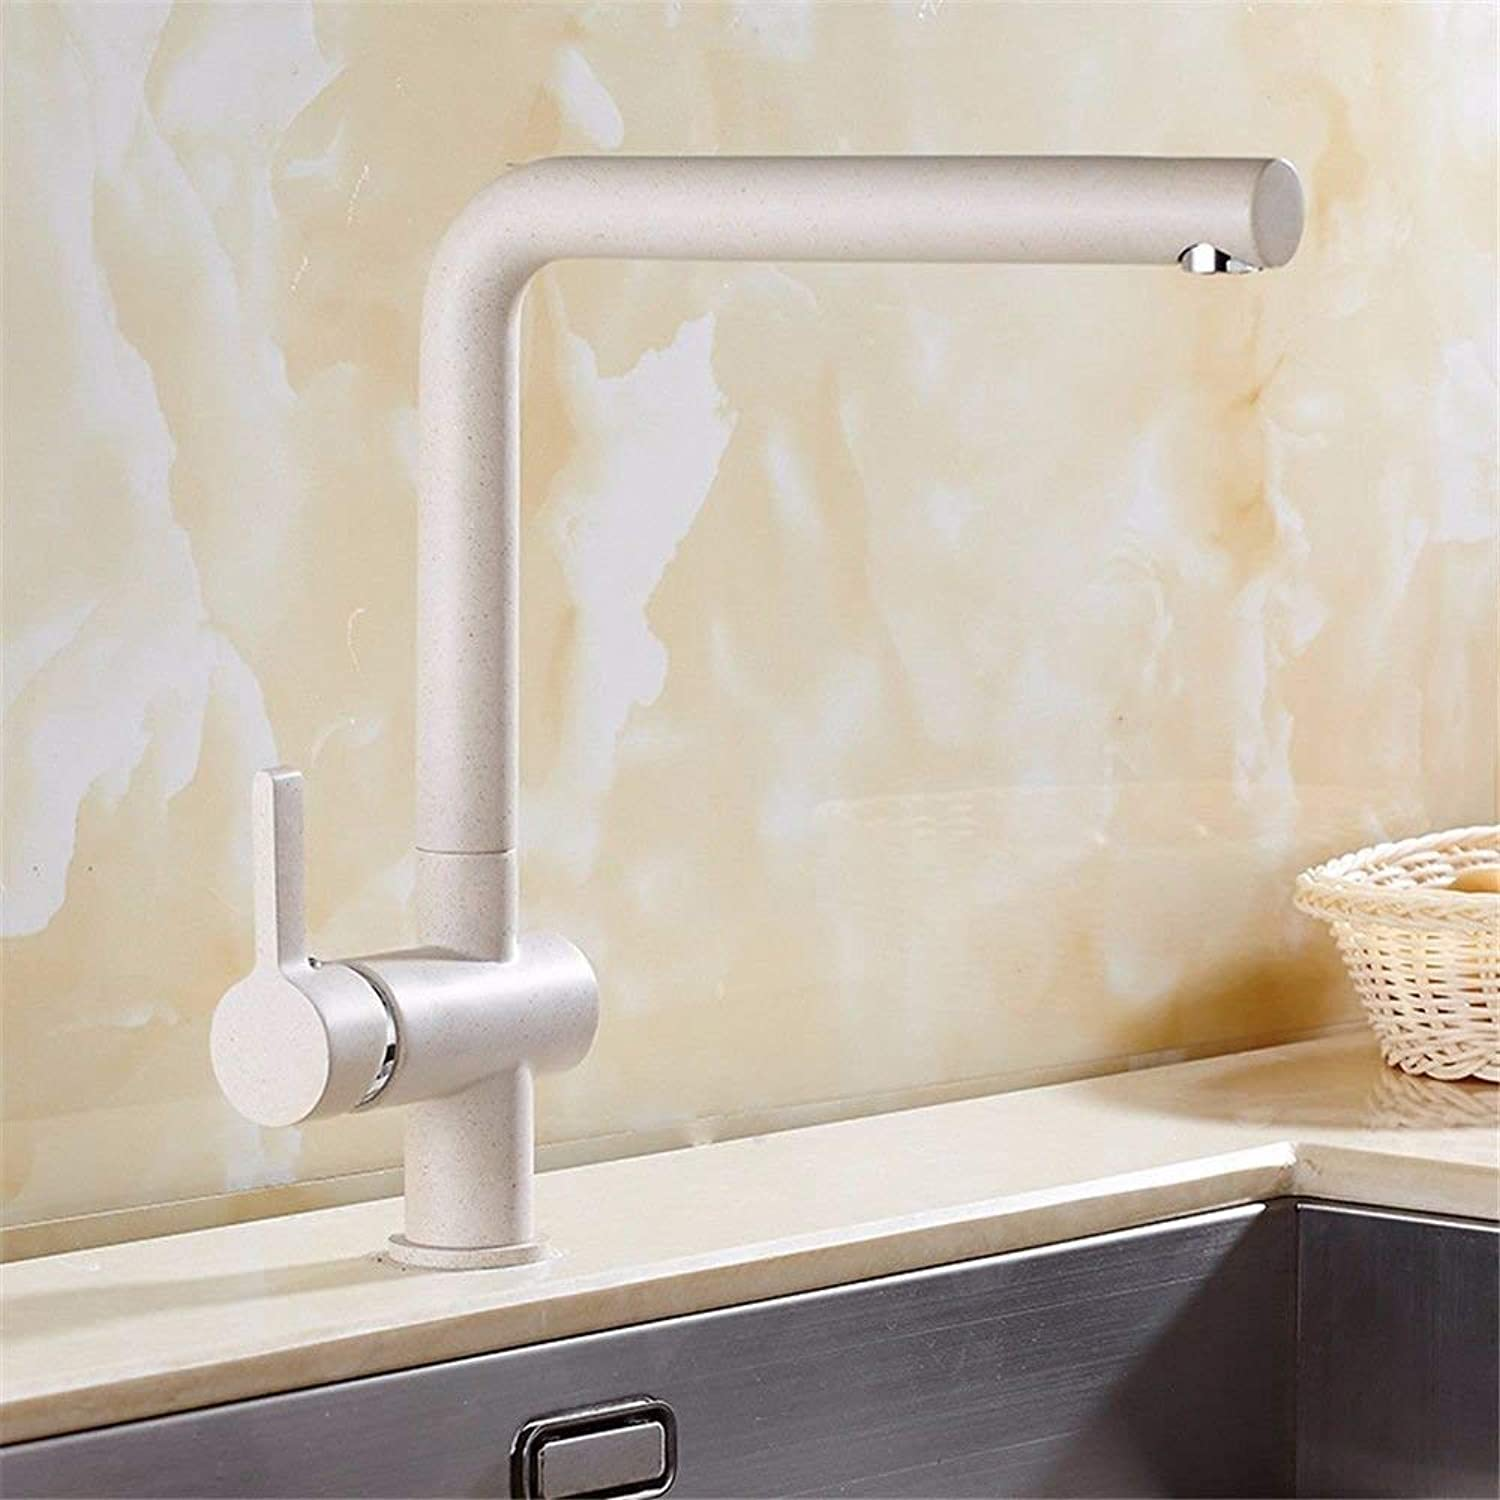 Oudan Kitchen bath basin sink mixer tap faucet white sink mixer stainless steel basin mixer tap hot and cold water pull-out spout head solid brass sink faucet (color   -, Size   -)